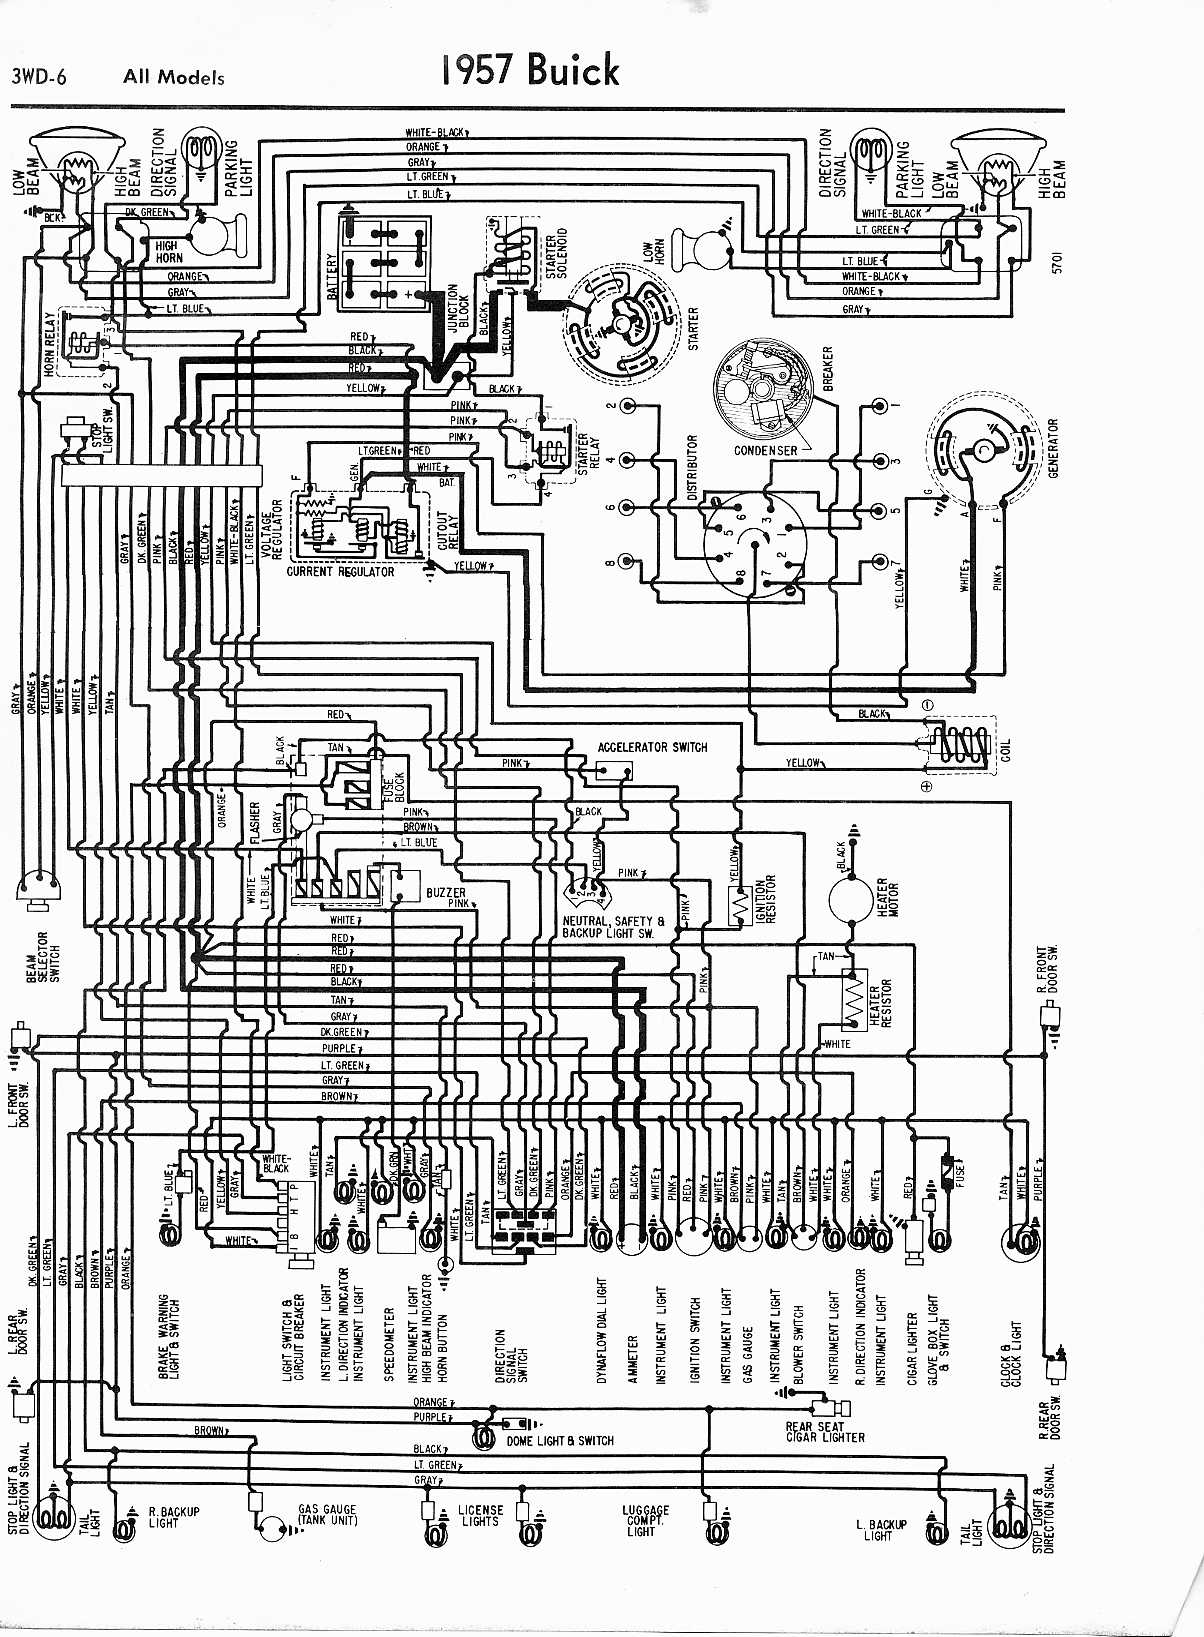 1970 Jeep Wiring Diagram Trusted 1976 Buick Electra Reinvent Your U2022 Cj5